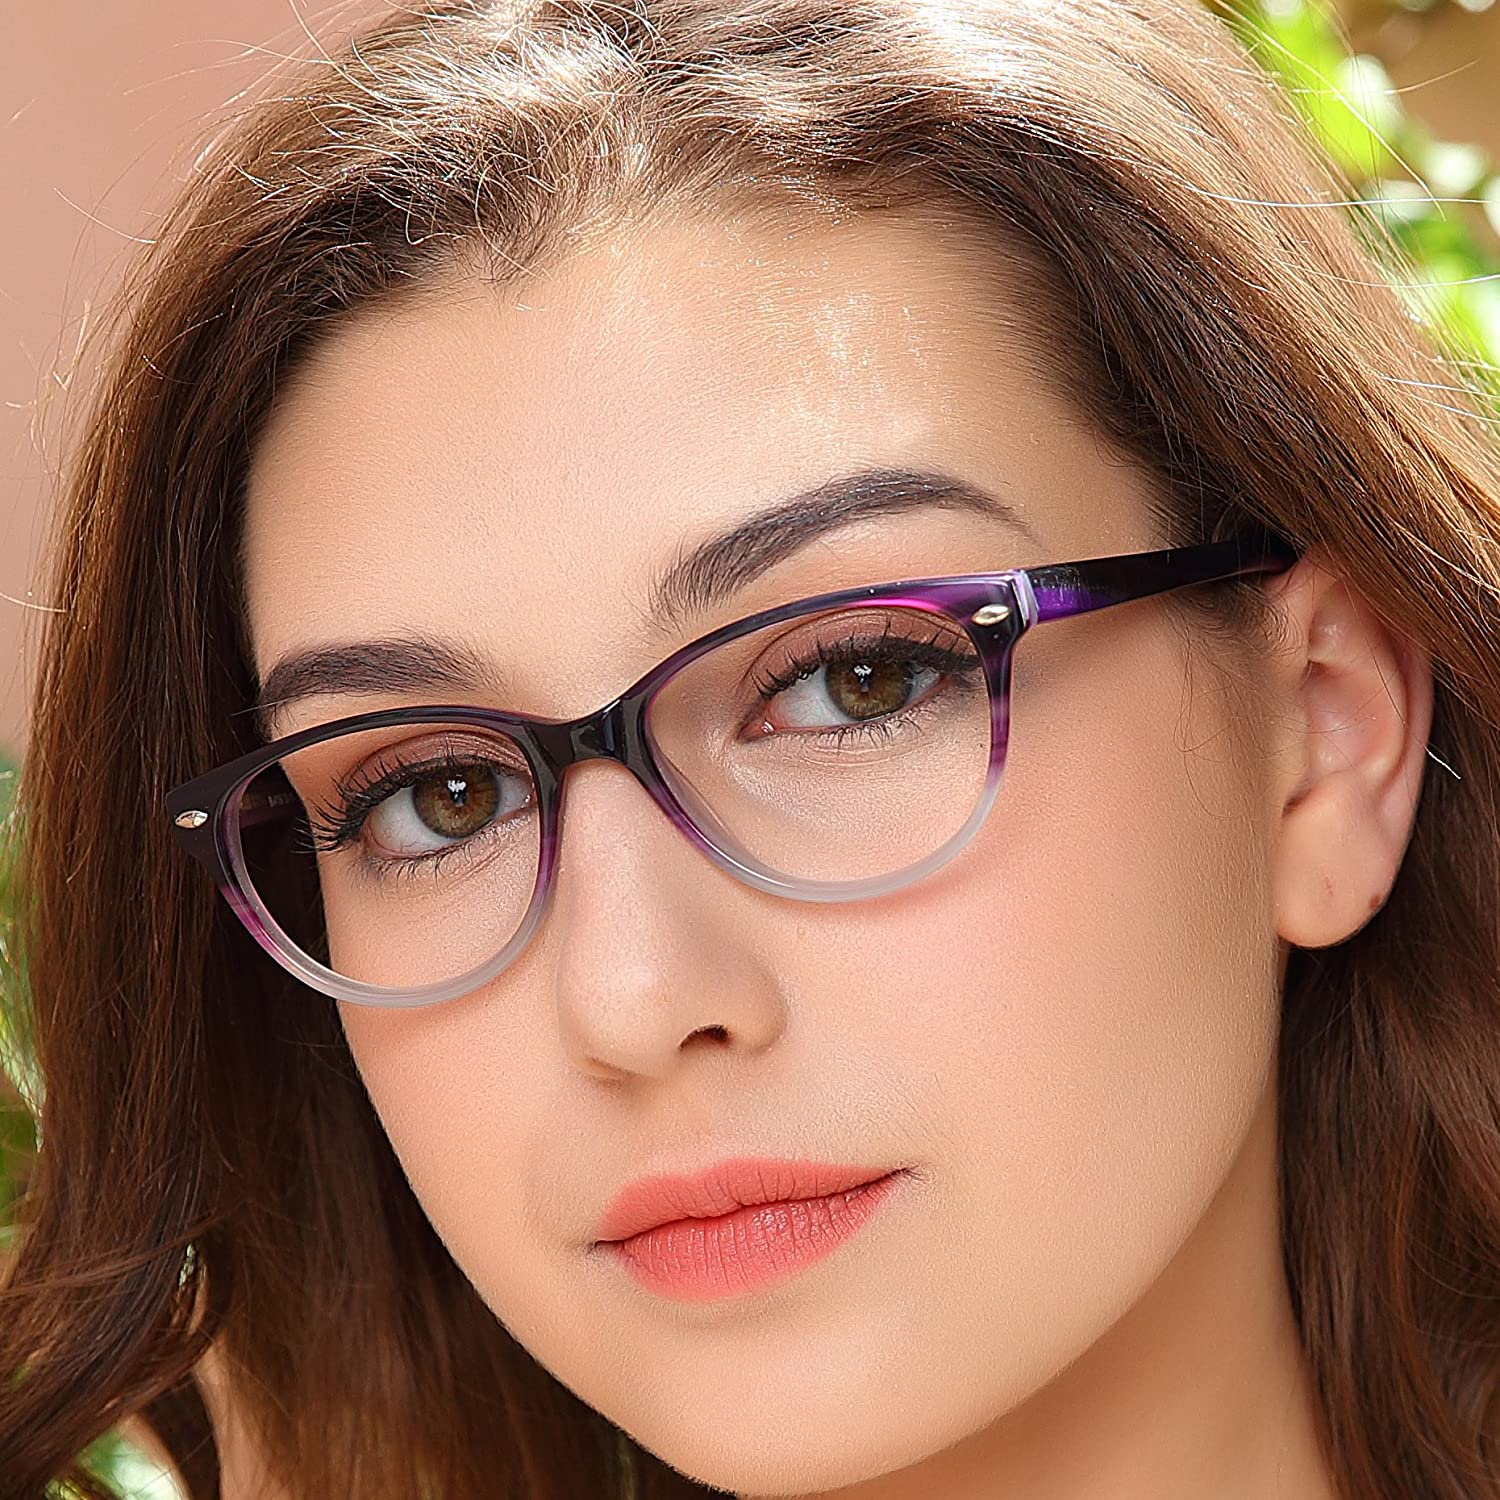 015a72219 OCCI CHIARI Optical Glasses Frame Womens Rectangle Stylish Eyewear Frame Non -Prescription Clear Eyeglasses 55